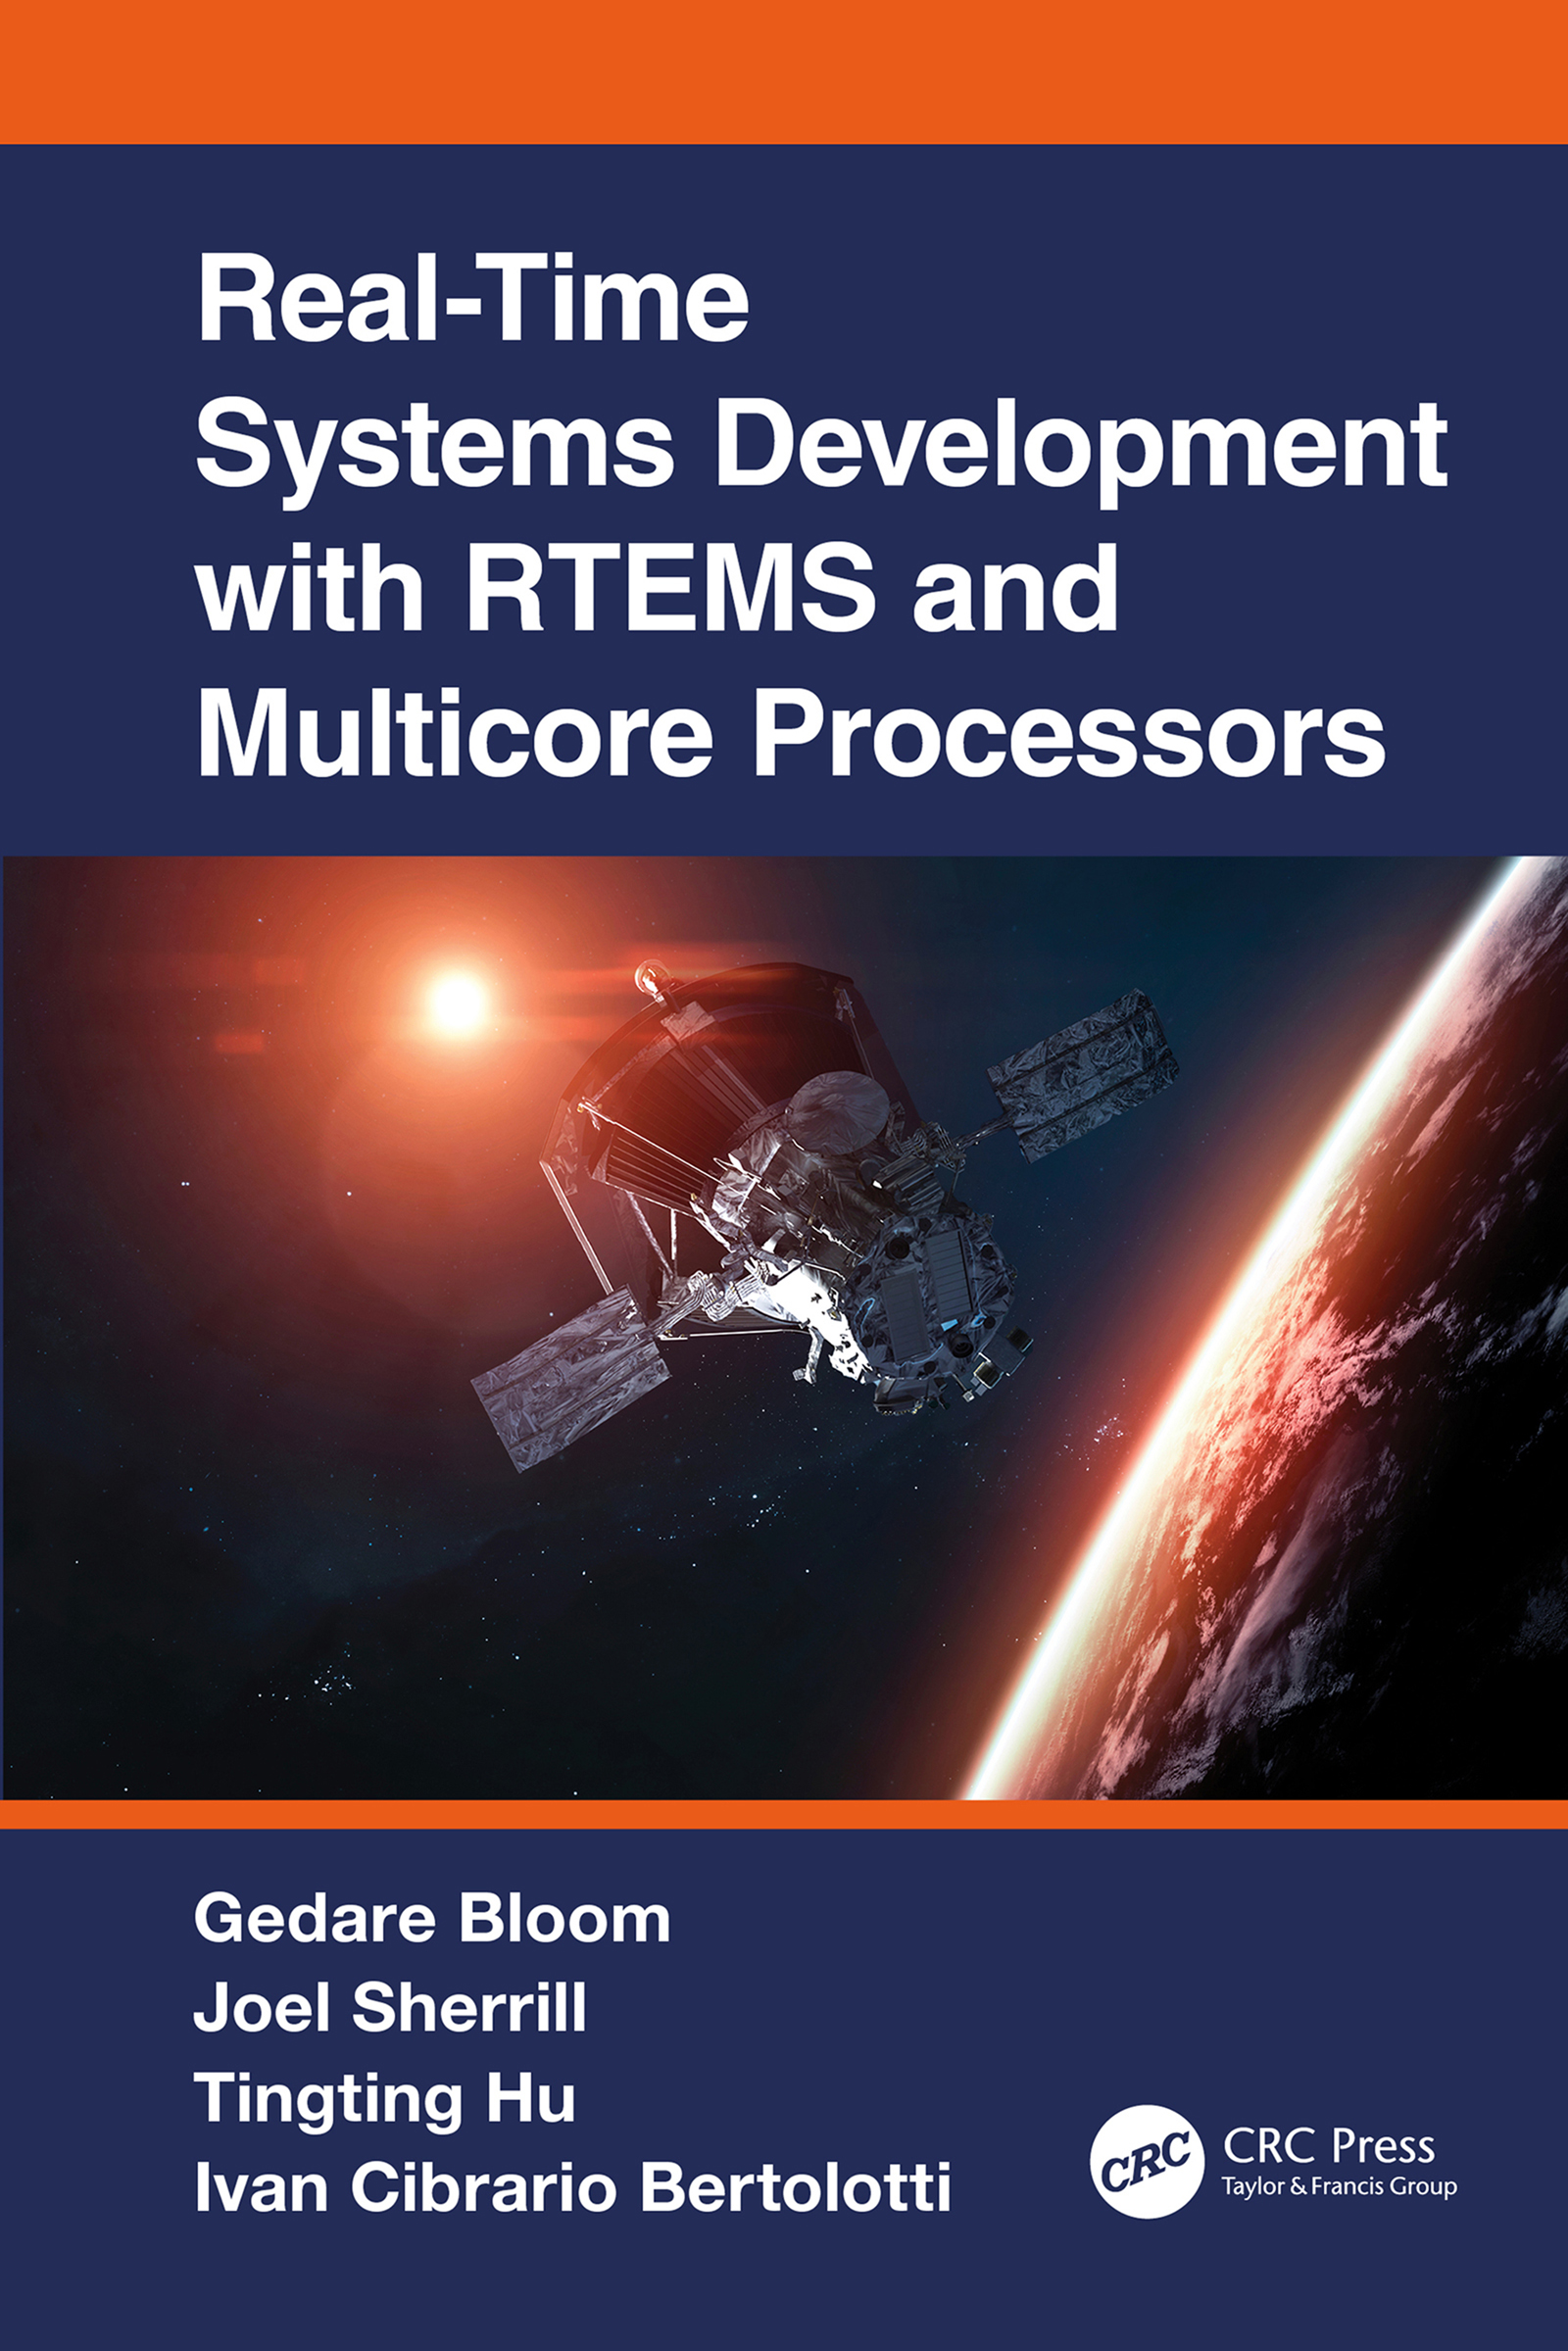 Real-Time Systems Development with RTEMS and Multicore Processors